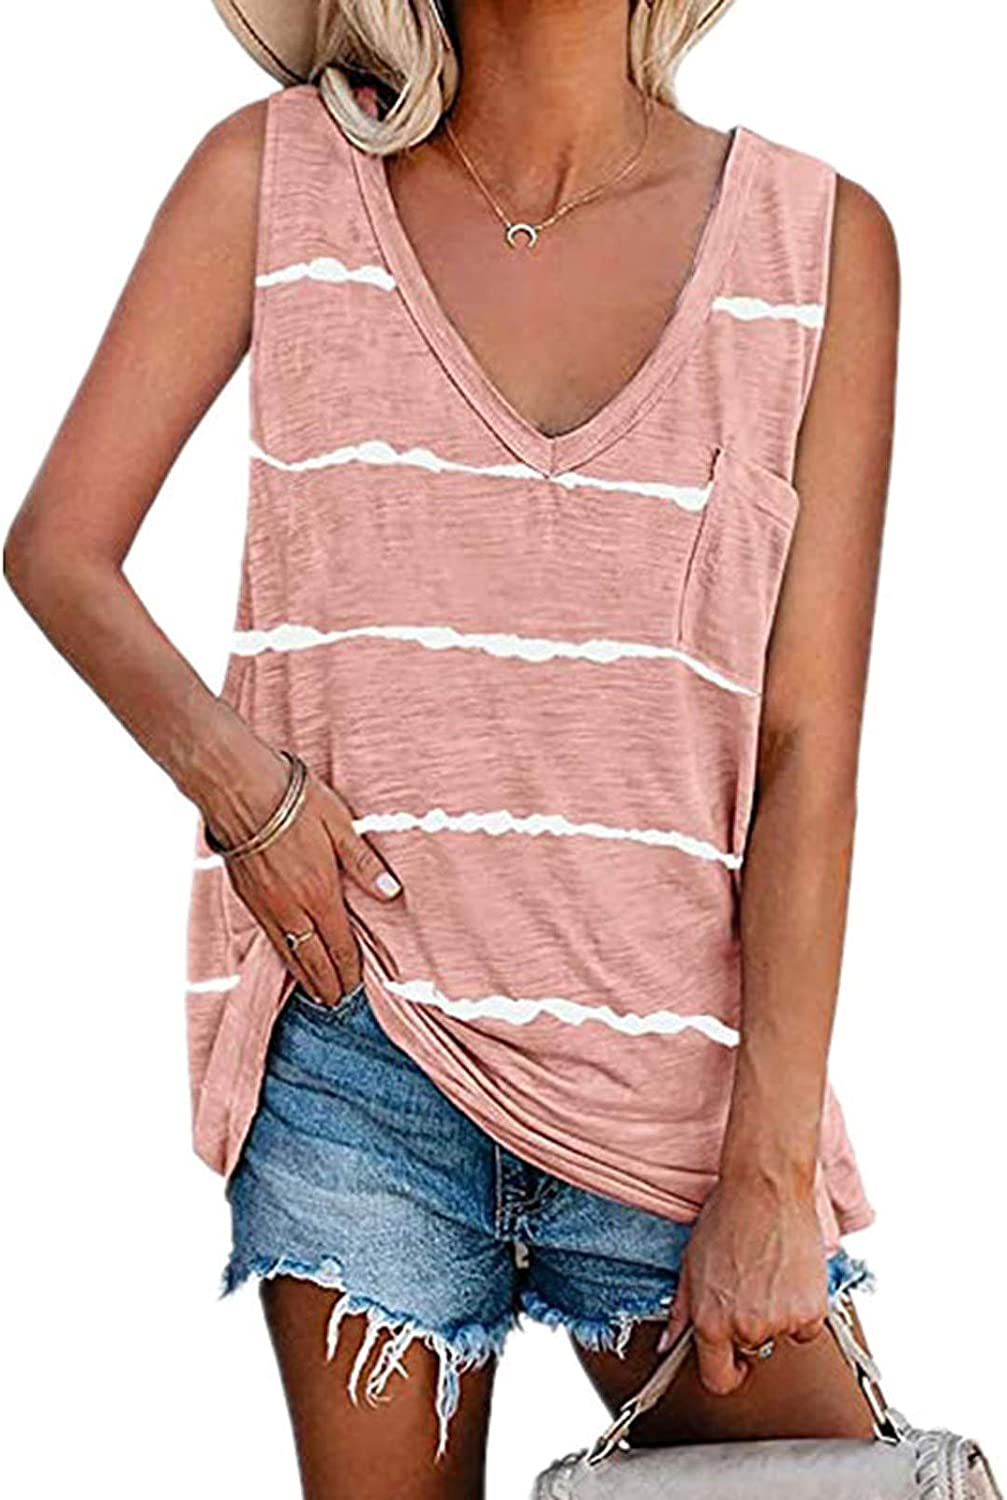 Women'S Fashion Summer Loose And Comfortable V-Neck Sleeveless Vest, Outdoor Leisure Short-Sleeved T-Shirt Top